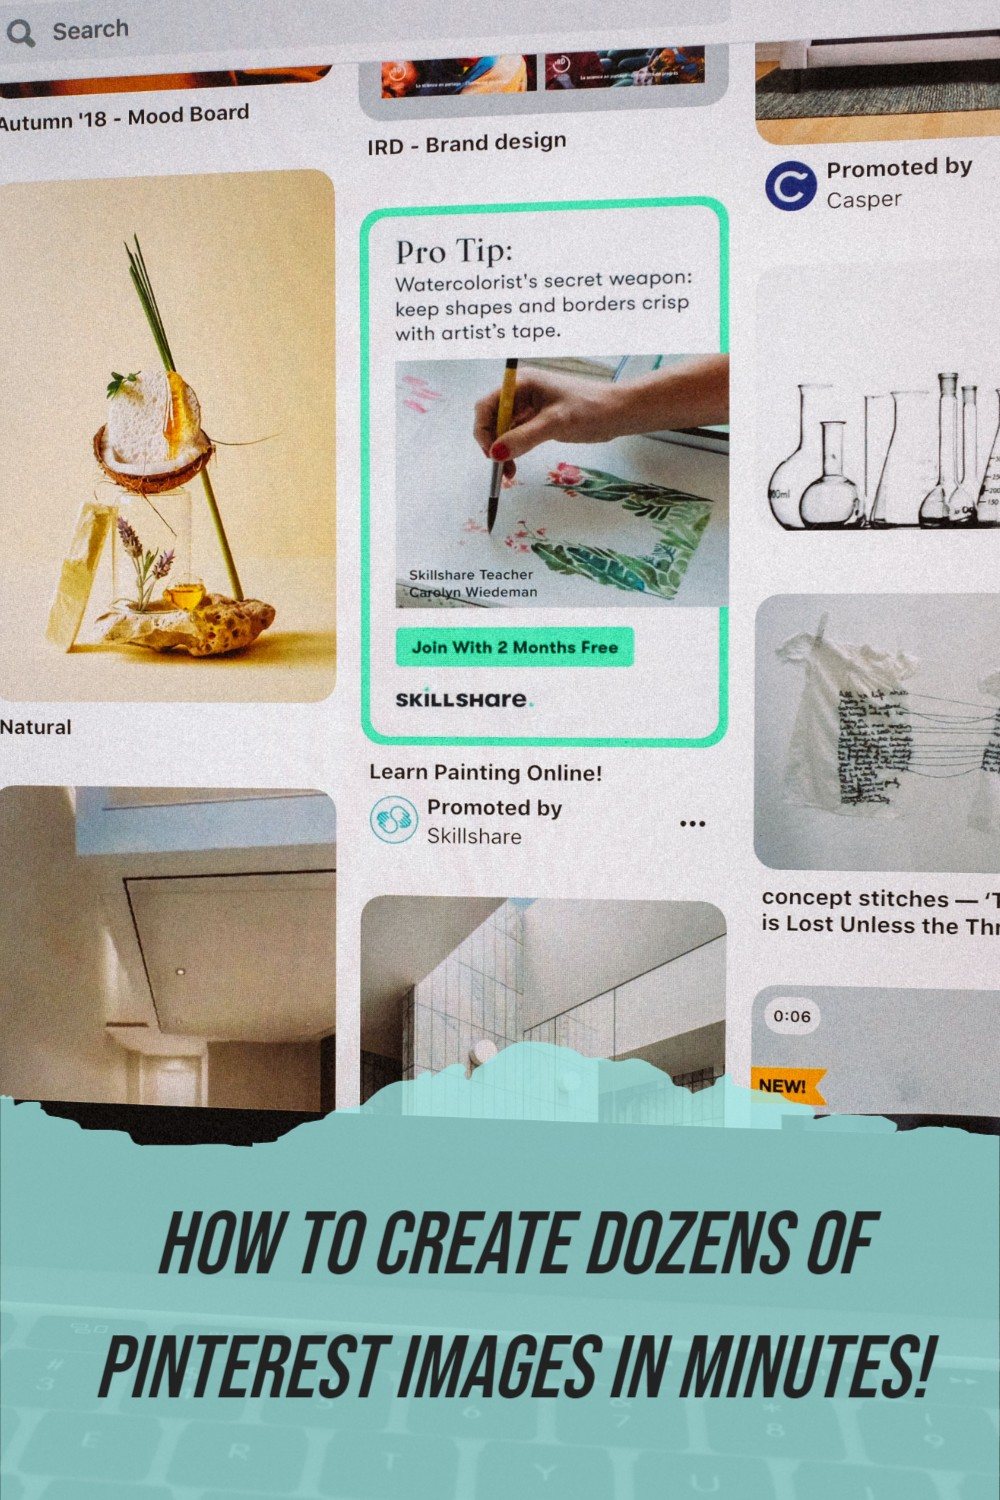 """Screenshot of Pinterest page with text overlay """"How to create dozens of pinterest images in minutes!"""""""